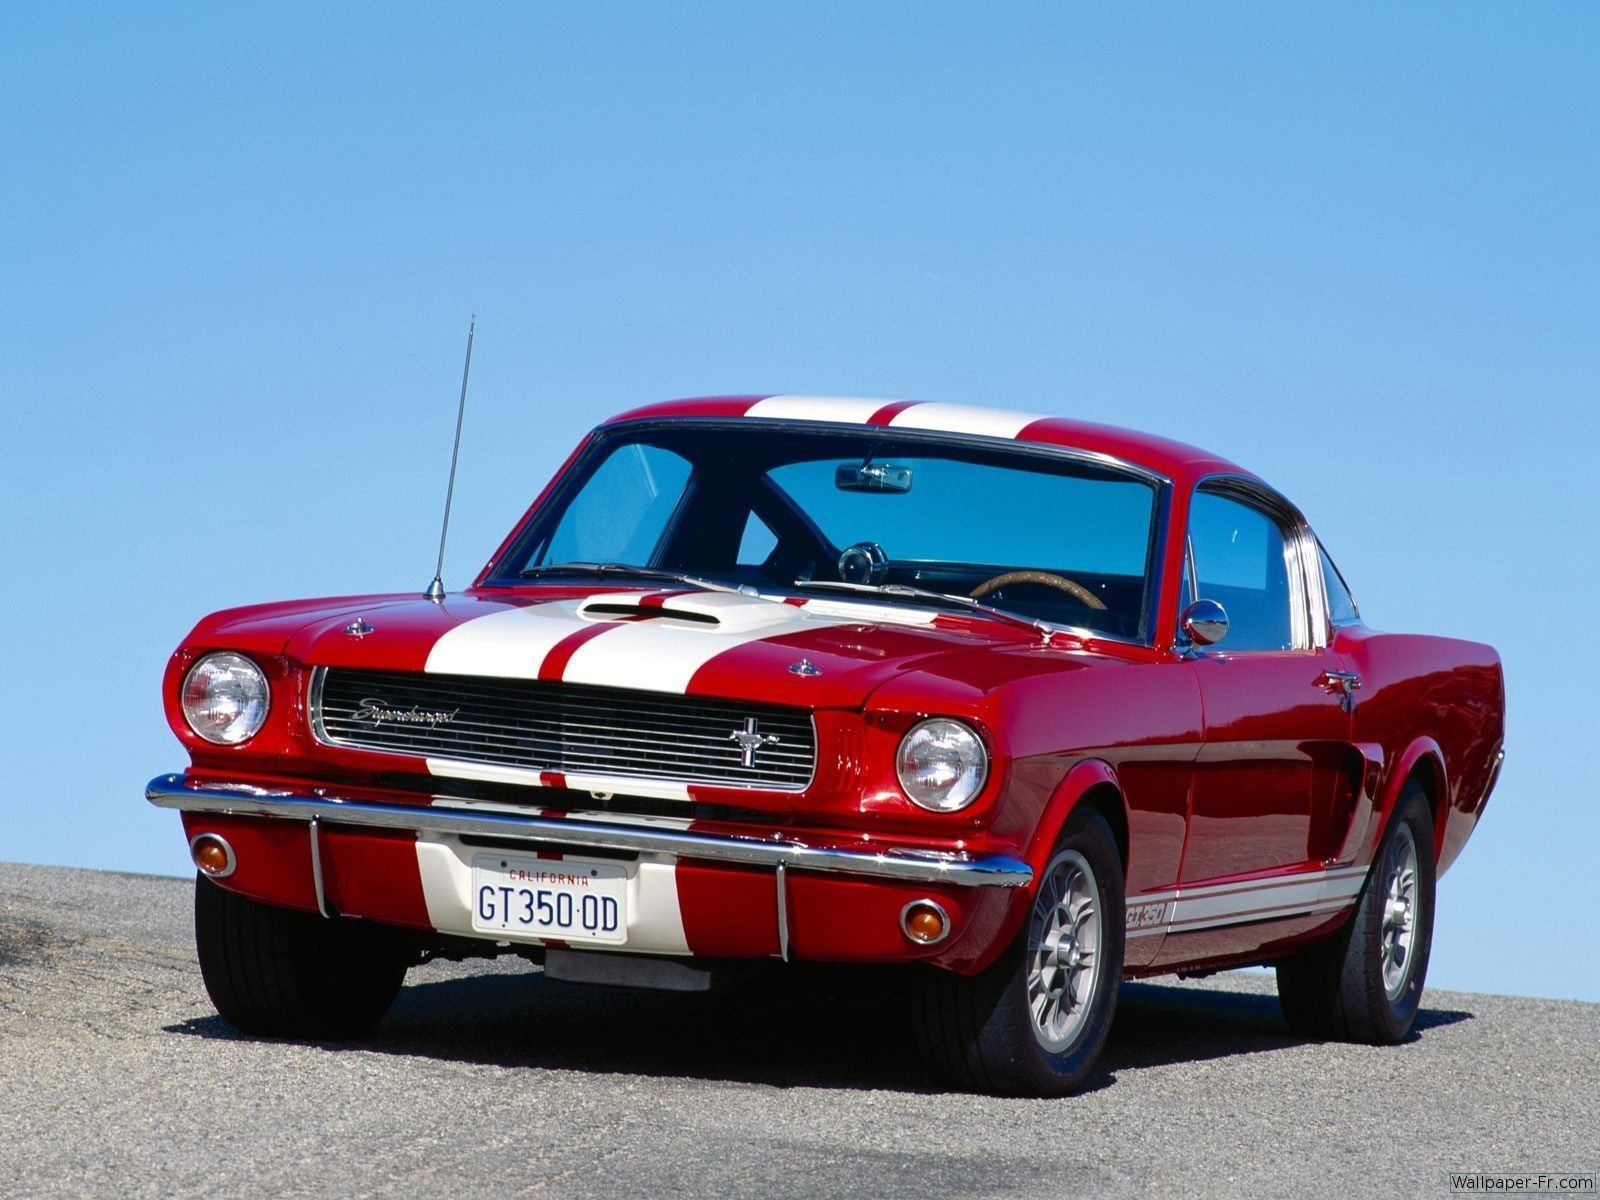 37+ Ford mustang shelby 1965 inspirations